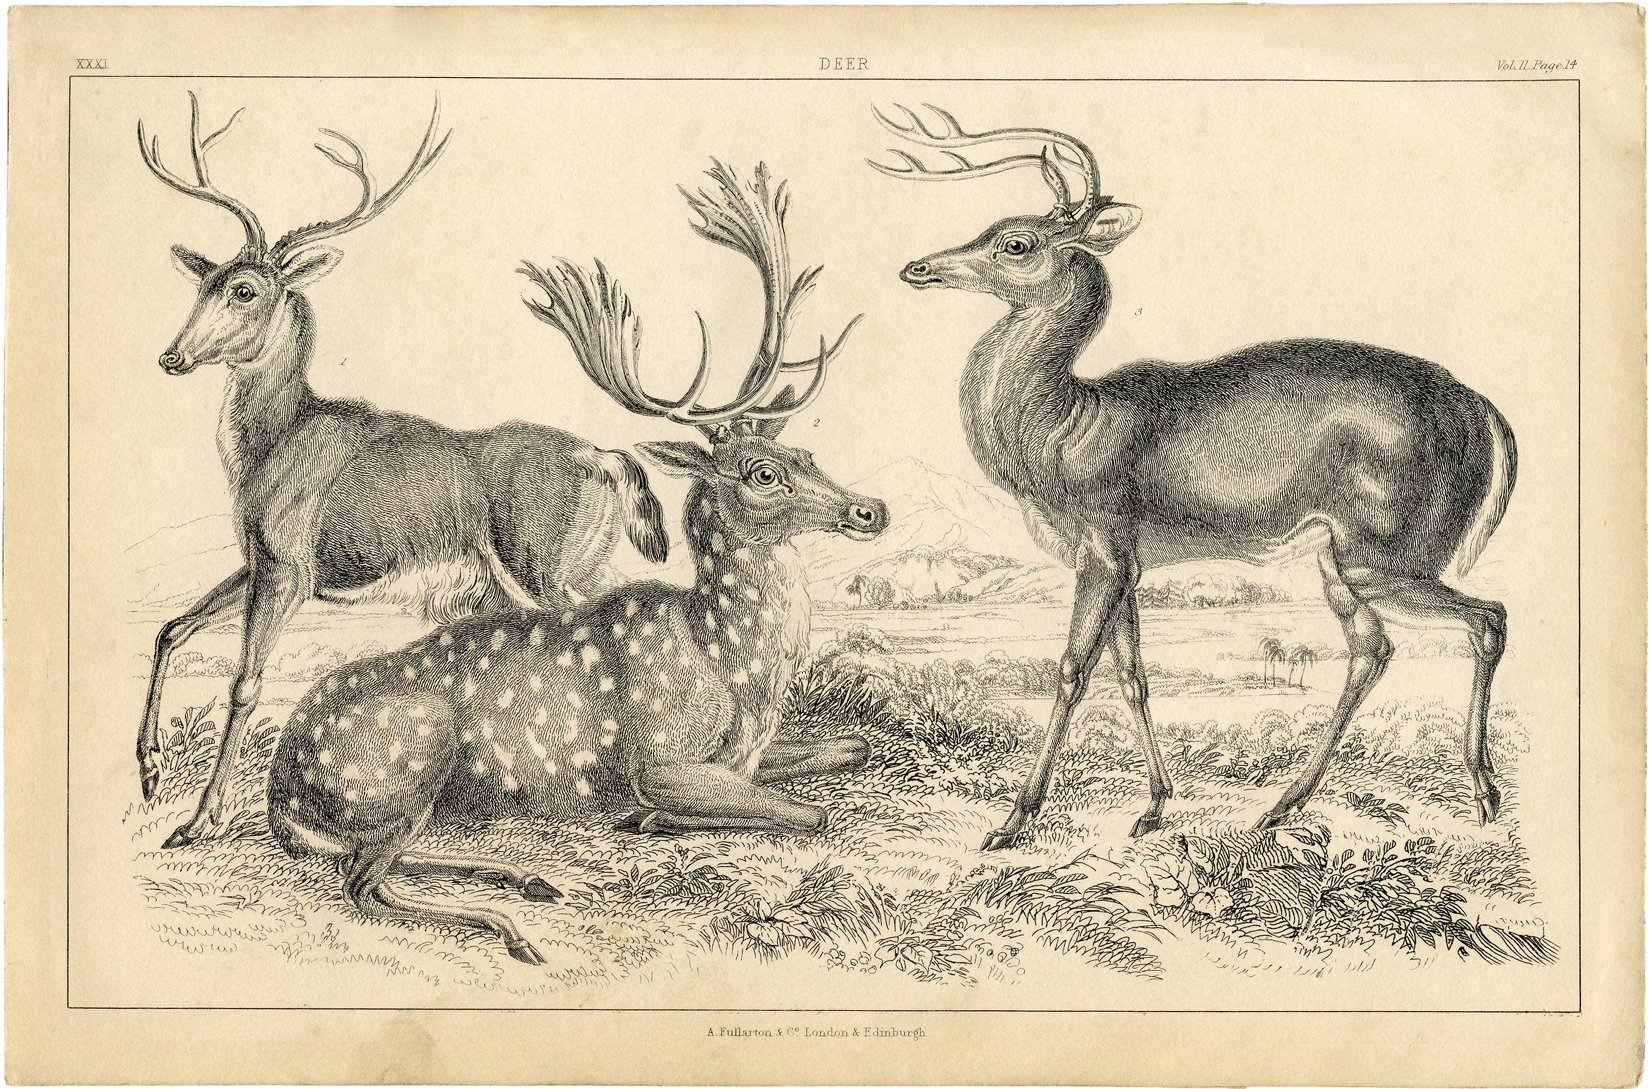 Free Deer Printable - Natural History - The Graphics Fairy